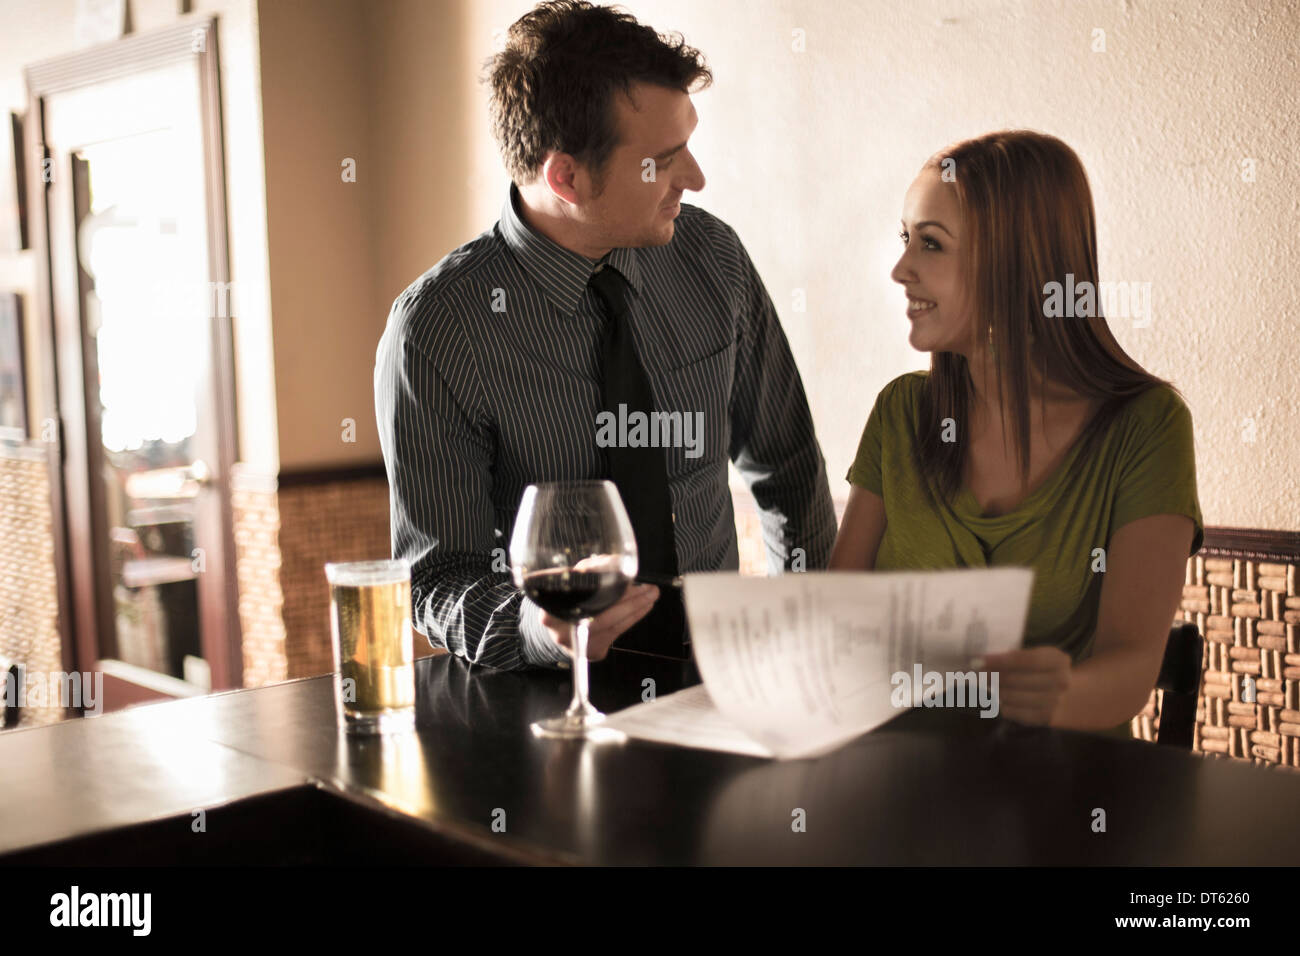 Businessman and woman looking at contract in a wine bar - Stock Image